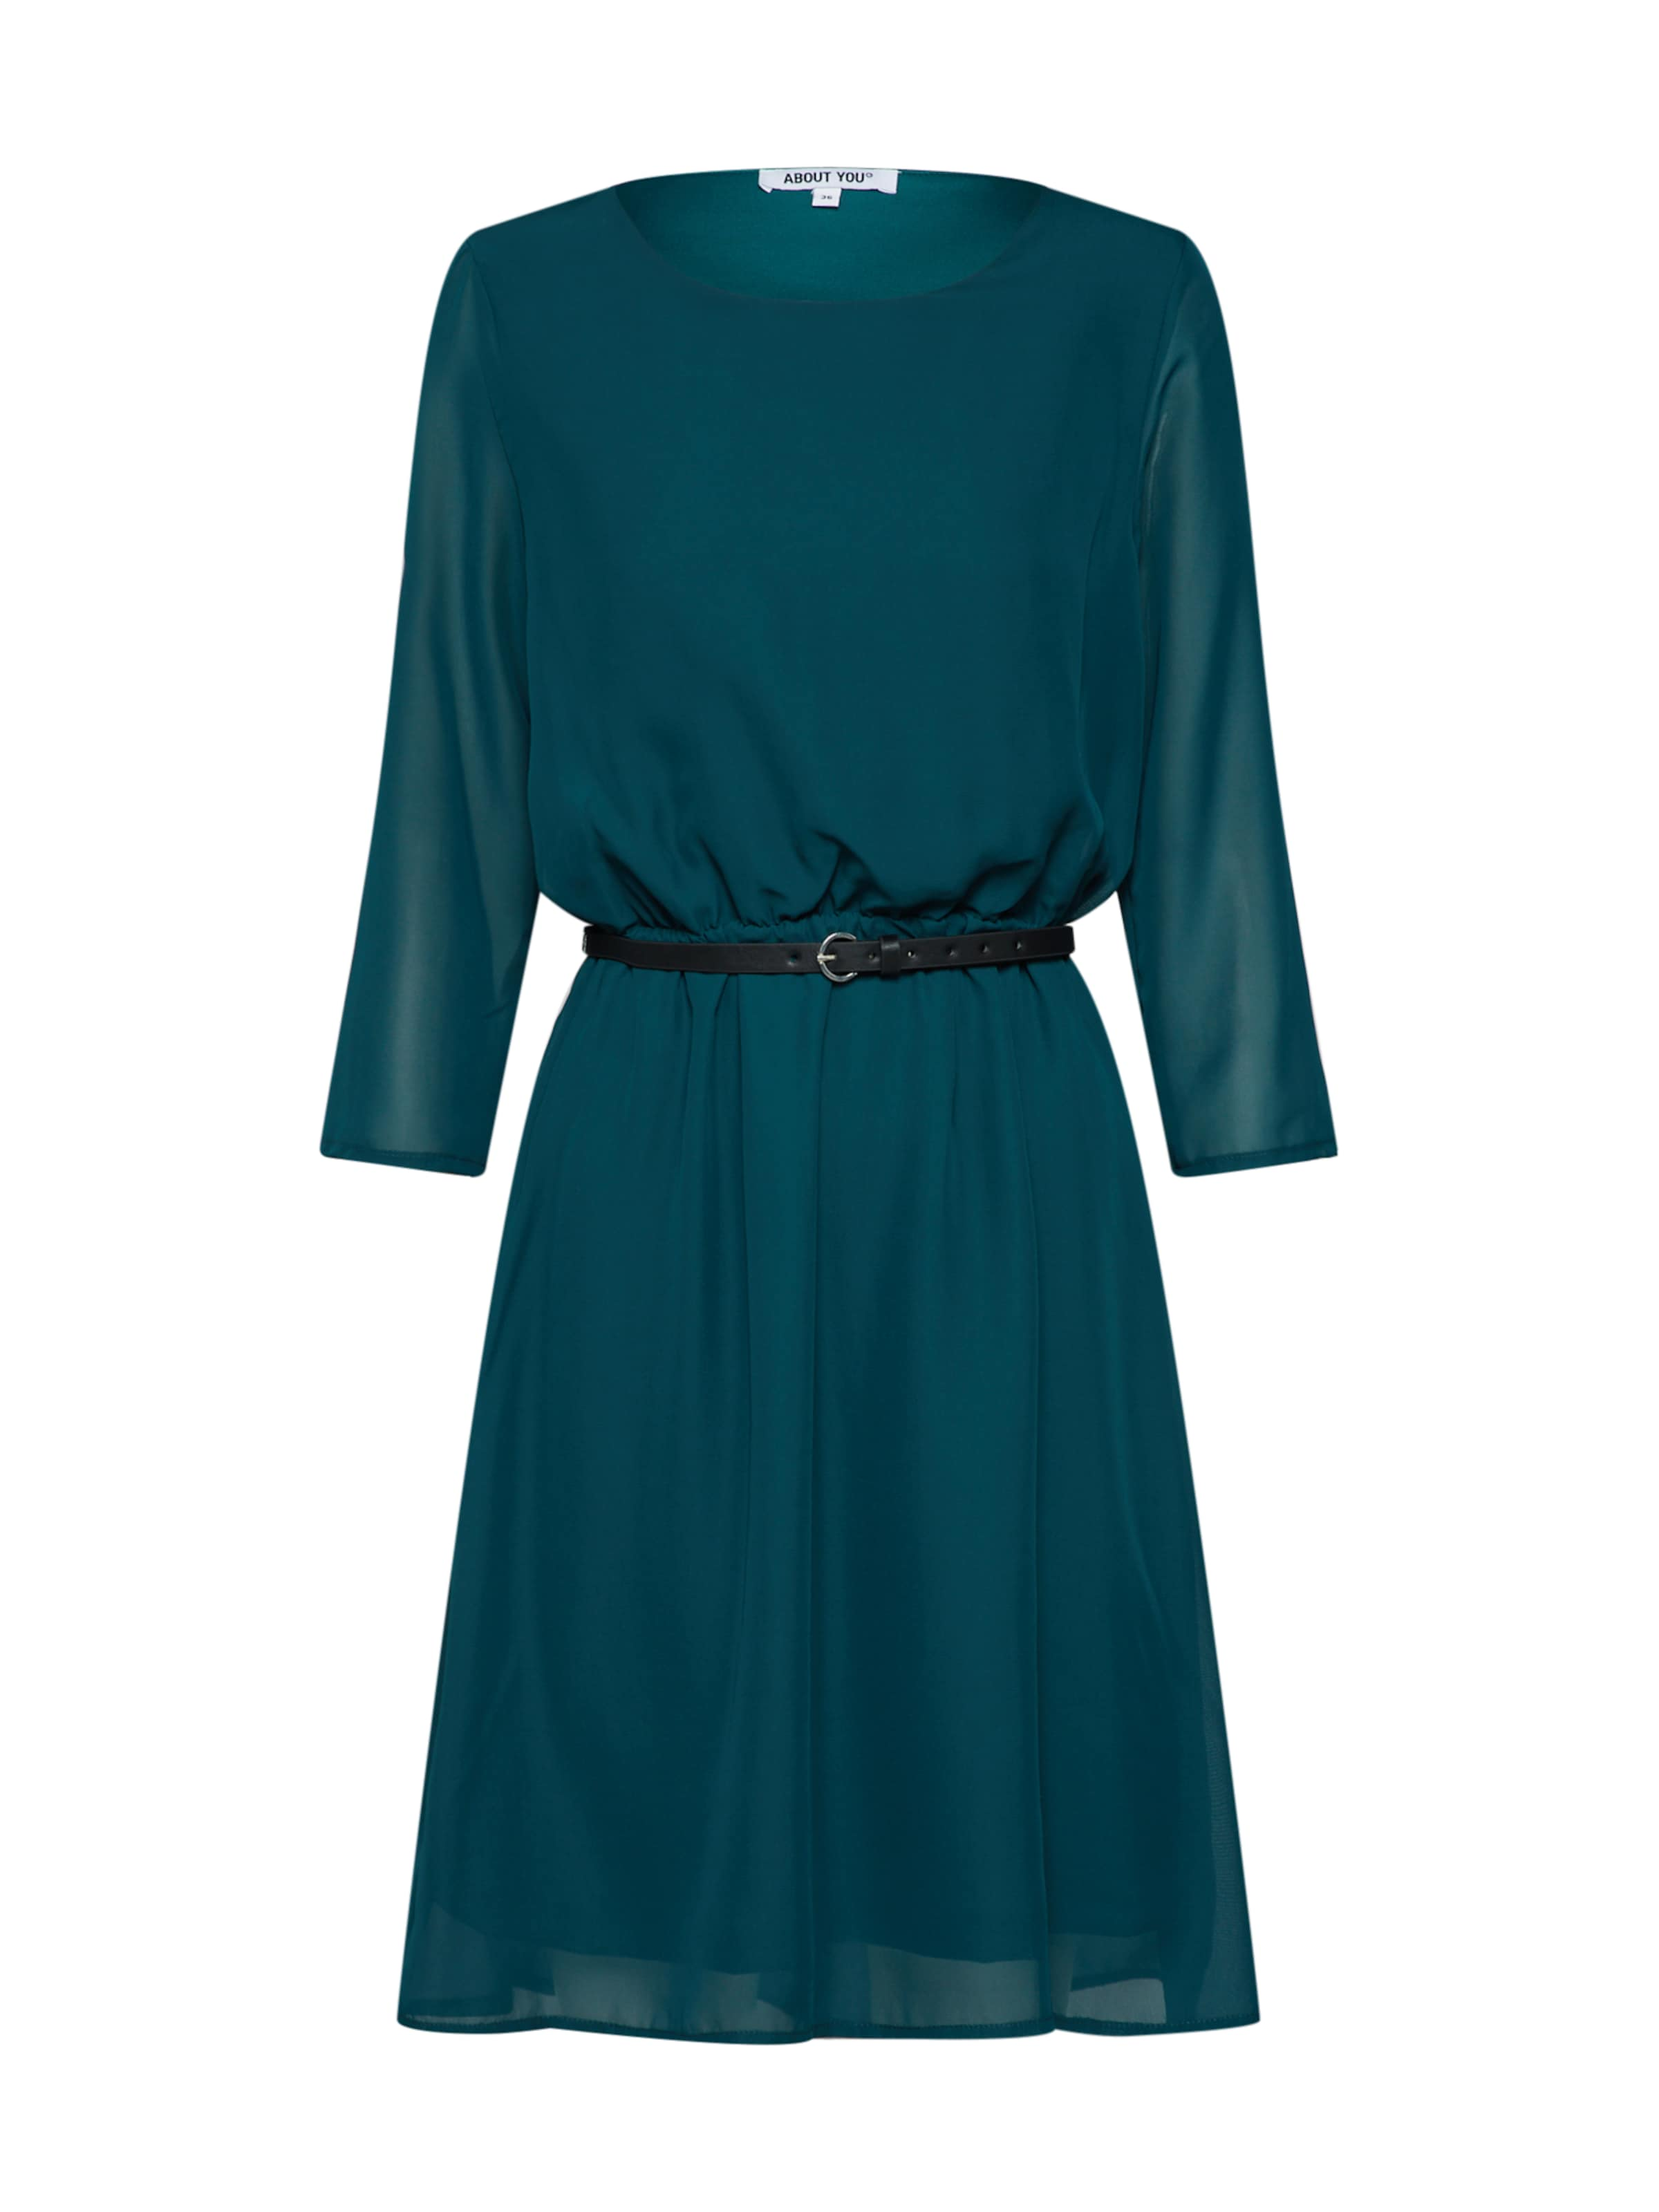 Robe Dress' About 'dilara You En Émeraude rdBxCoe